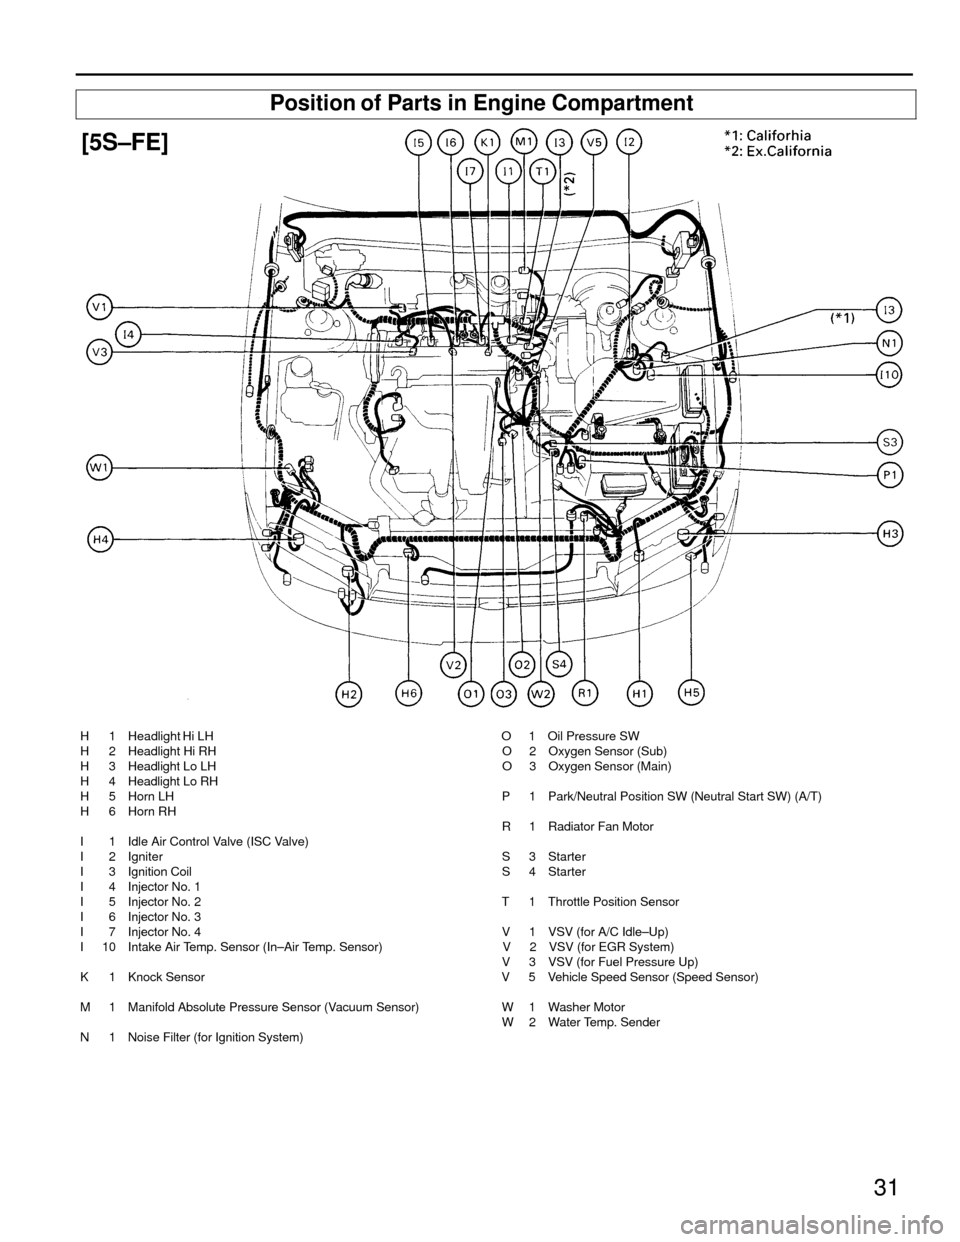 medium resolution of toyota camry 1994 xv10 4 g wiring diagrams workshop manual page 31